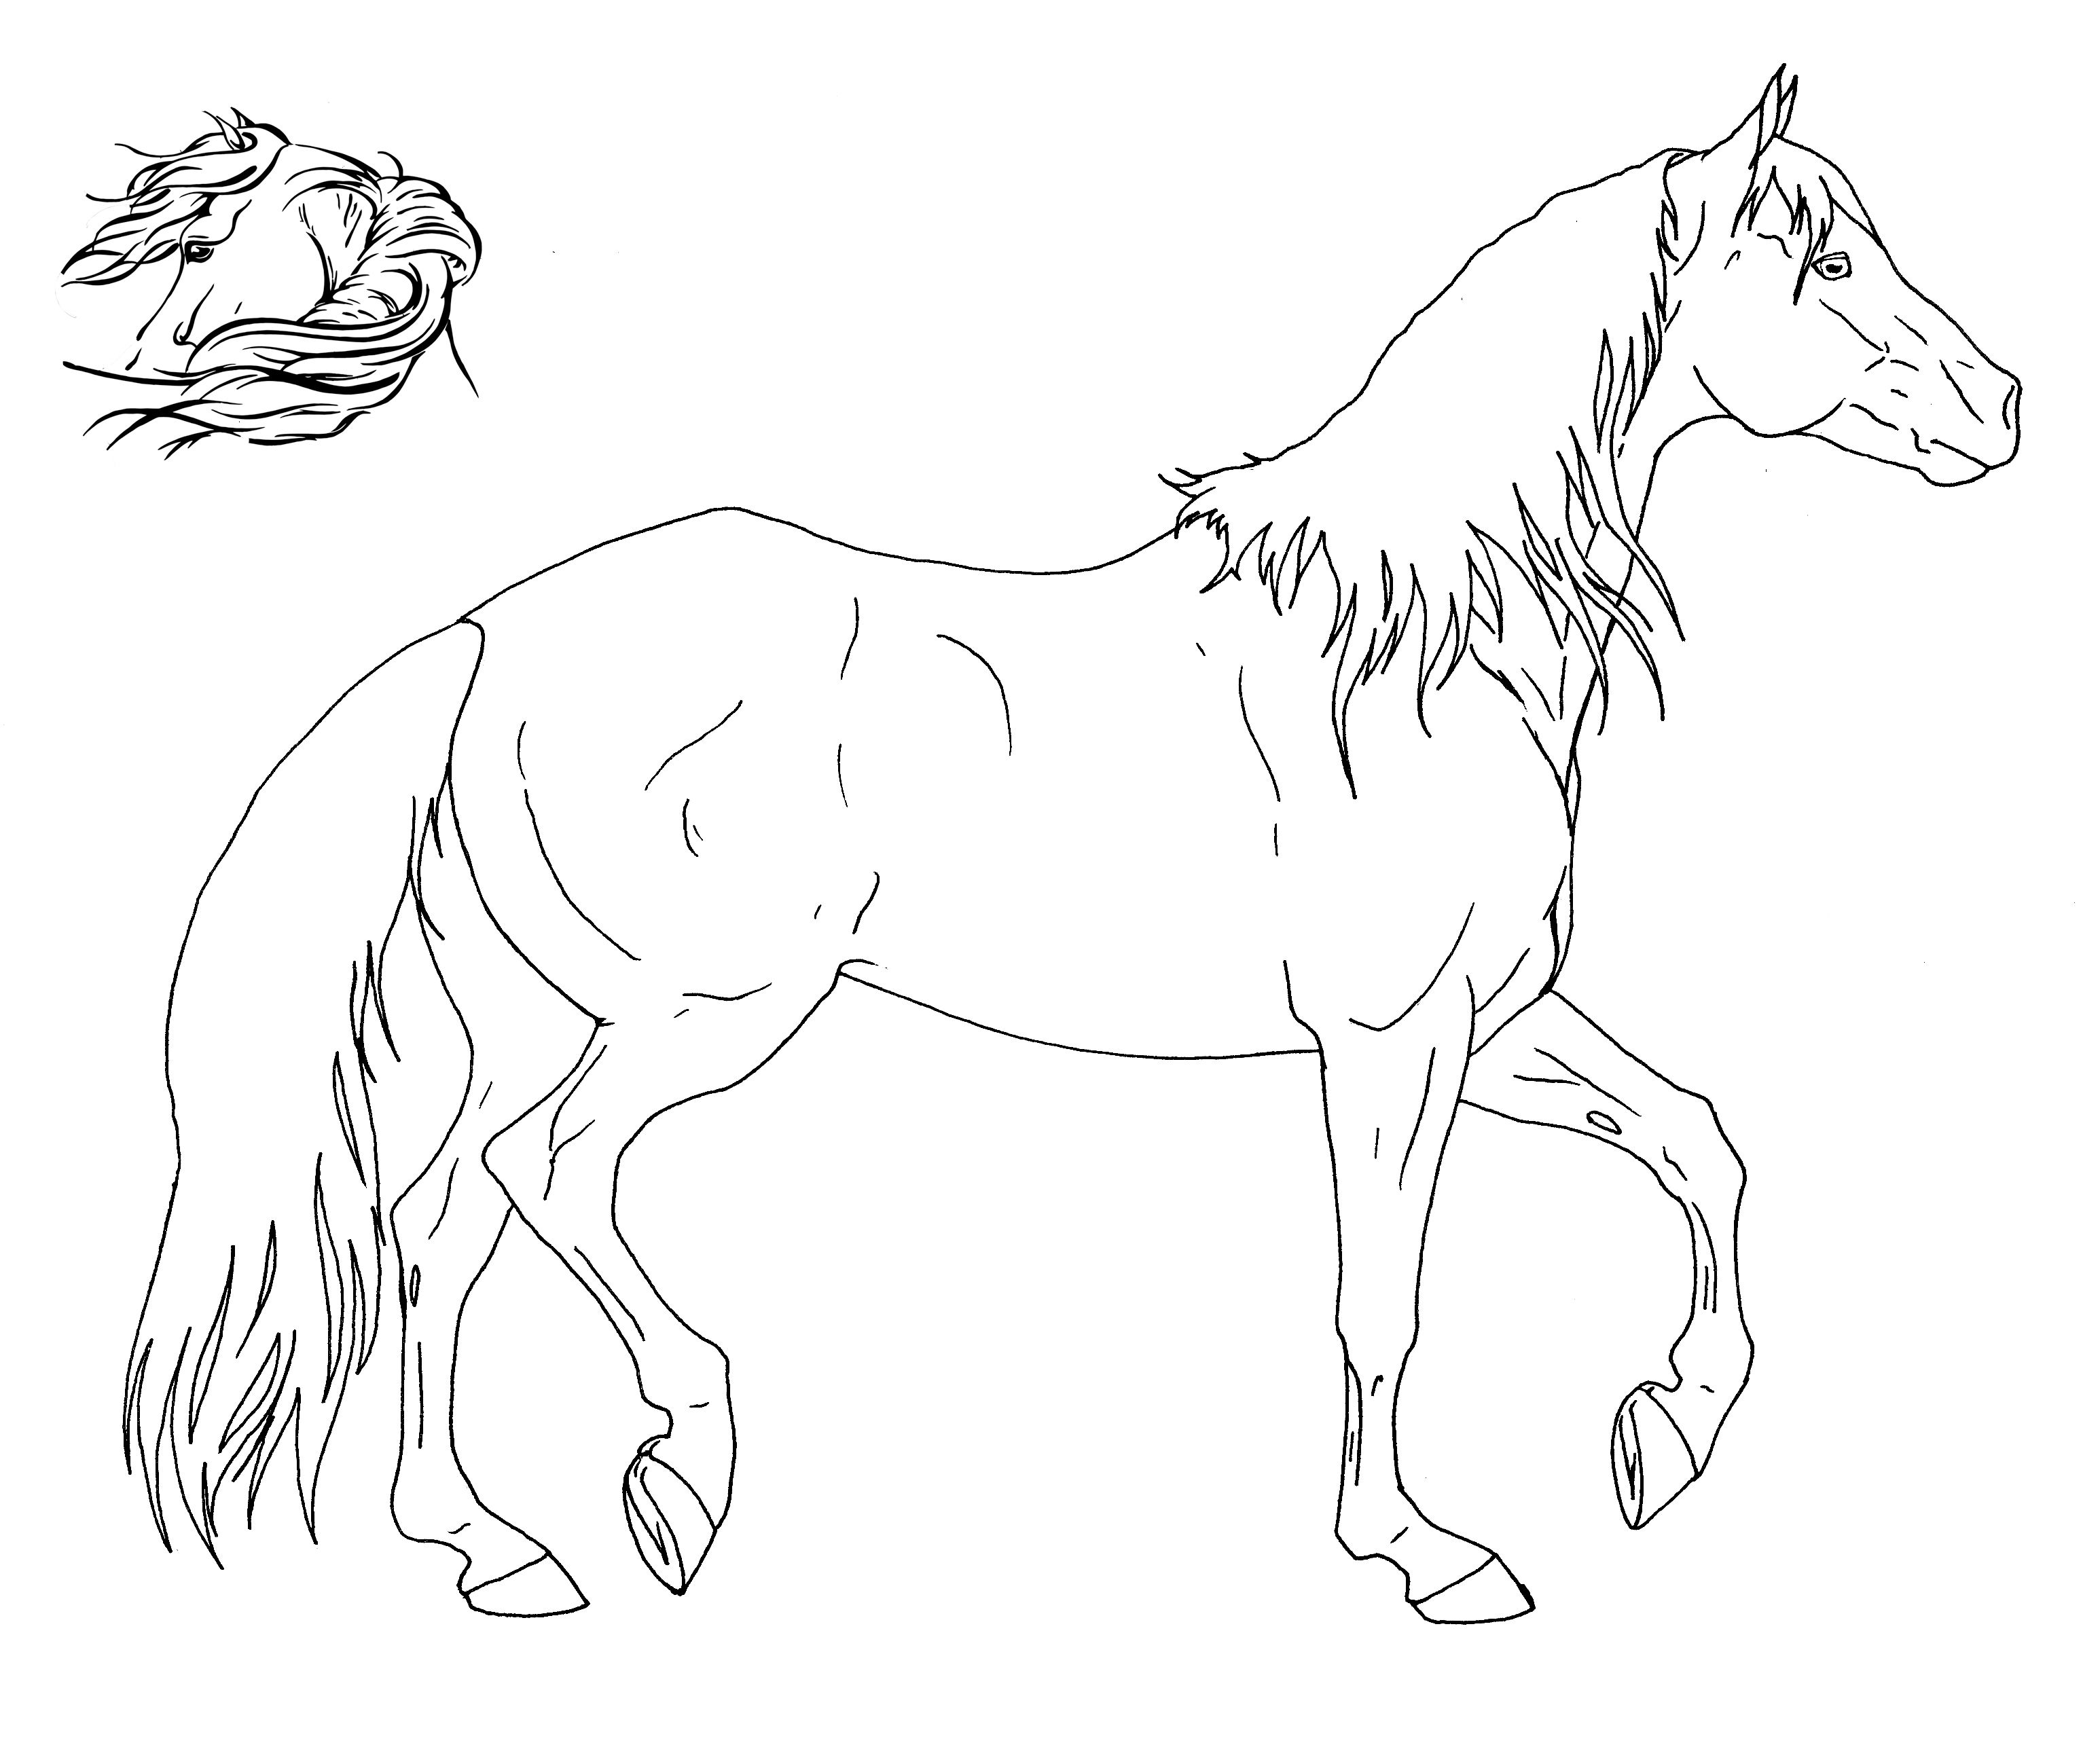 Horse Printable Pictures Quality Images On Animal Picture Society Intended For Free Printable Tenn Horse Coloring Pages Horse Coloring Books Horse Coloring [ 1024 x 768 Pixel ]